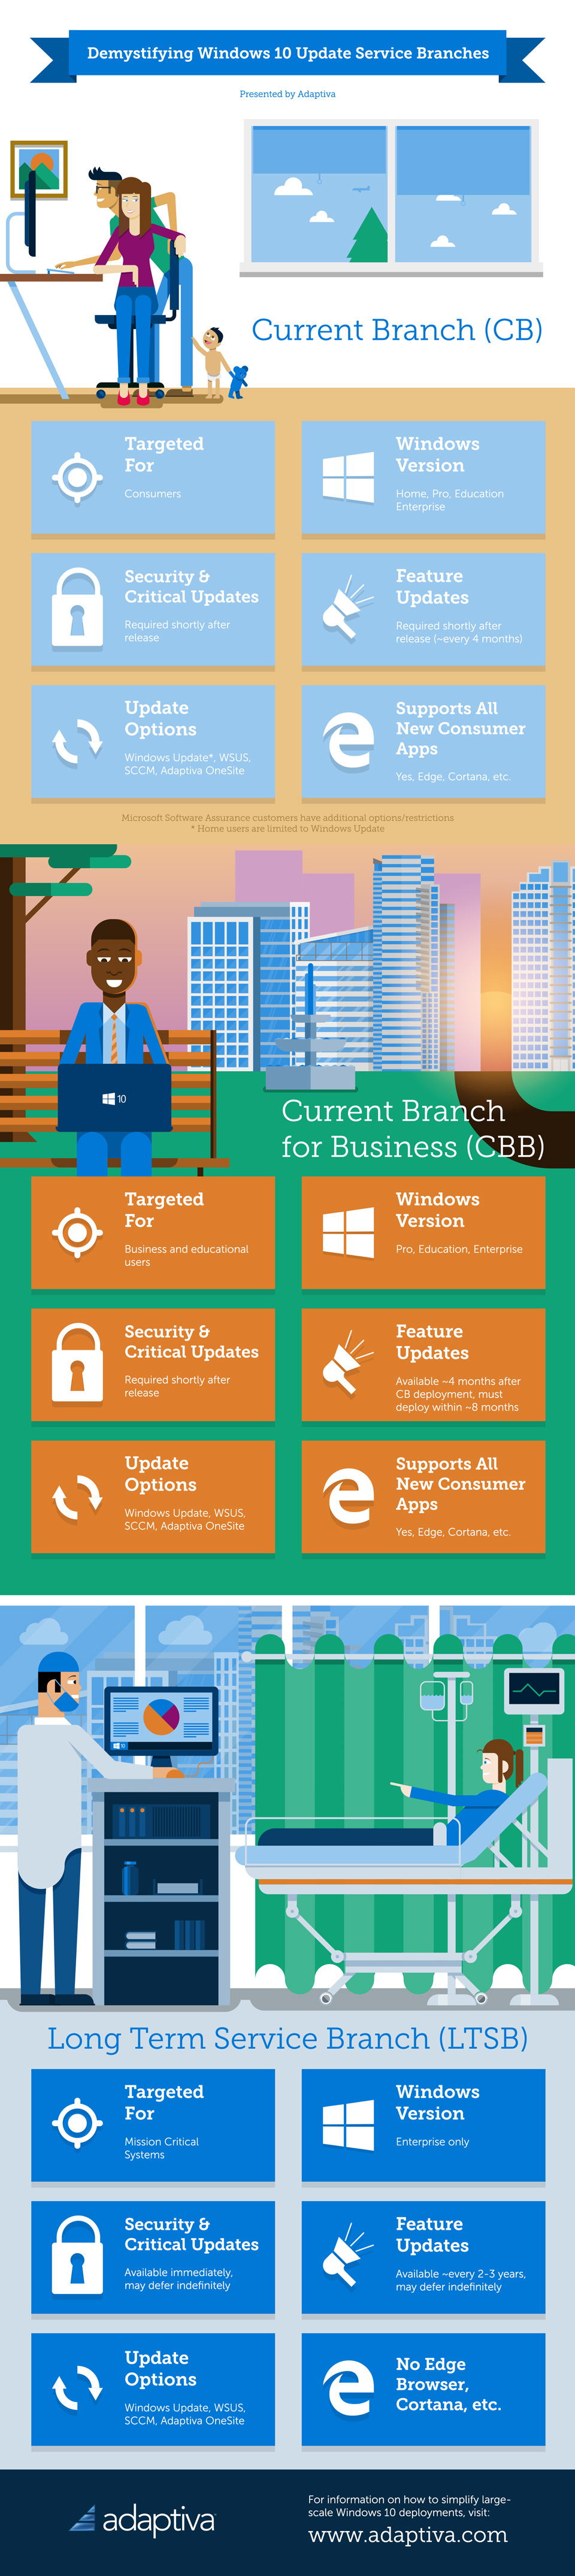 Windows 10 Update Service Branches Infographic